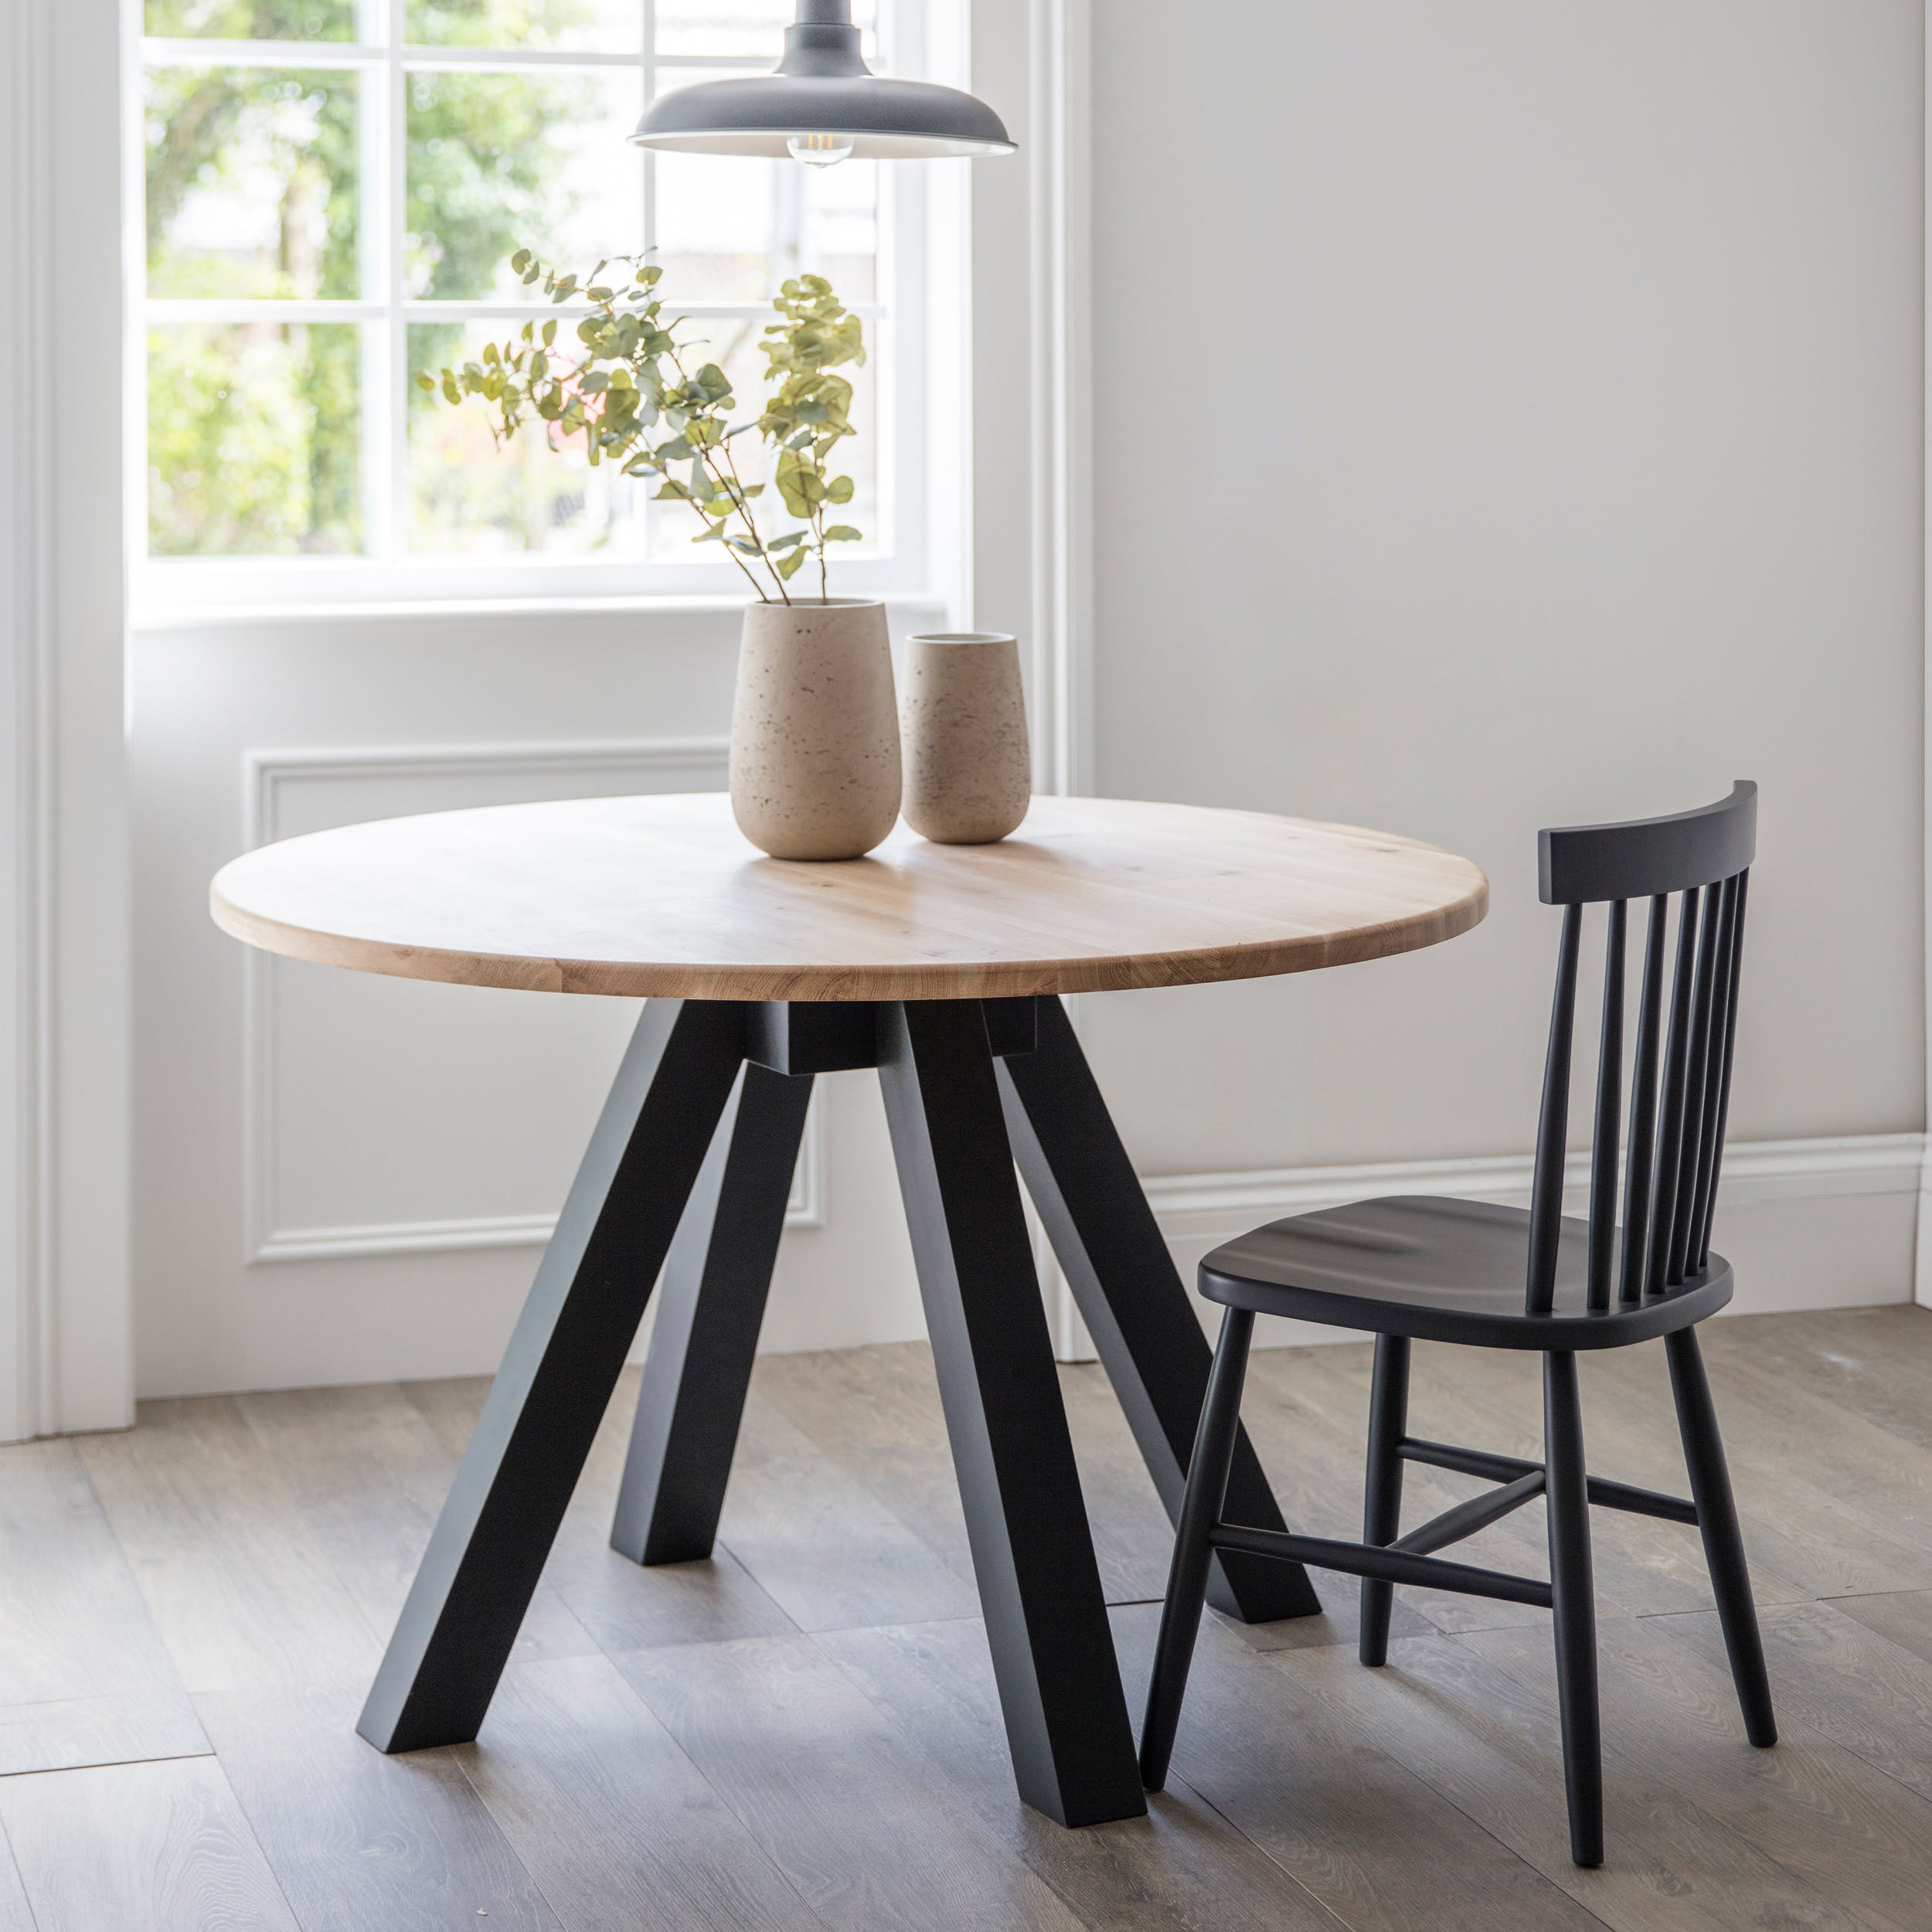 Round Raw Oak Dining Table Groovy Home Free Uk Delivery